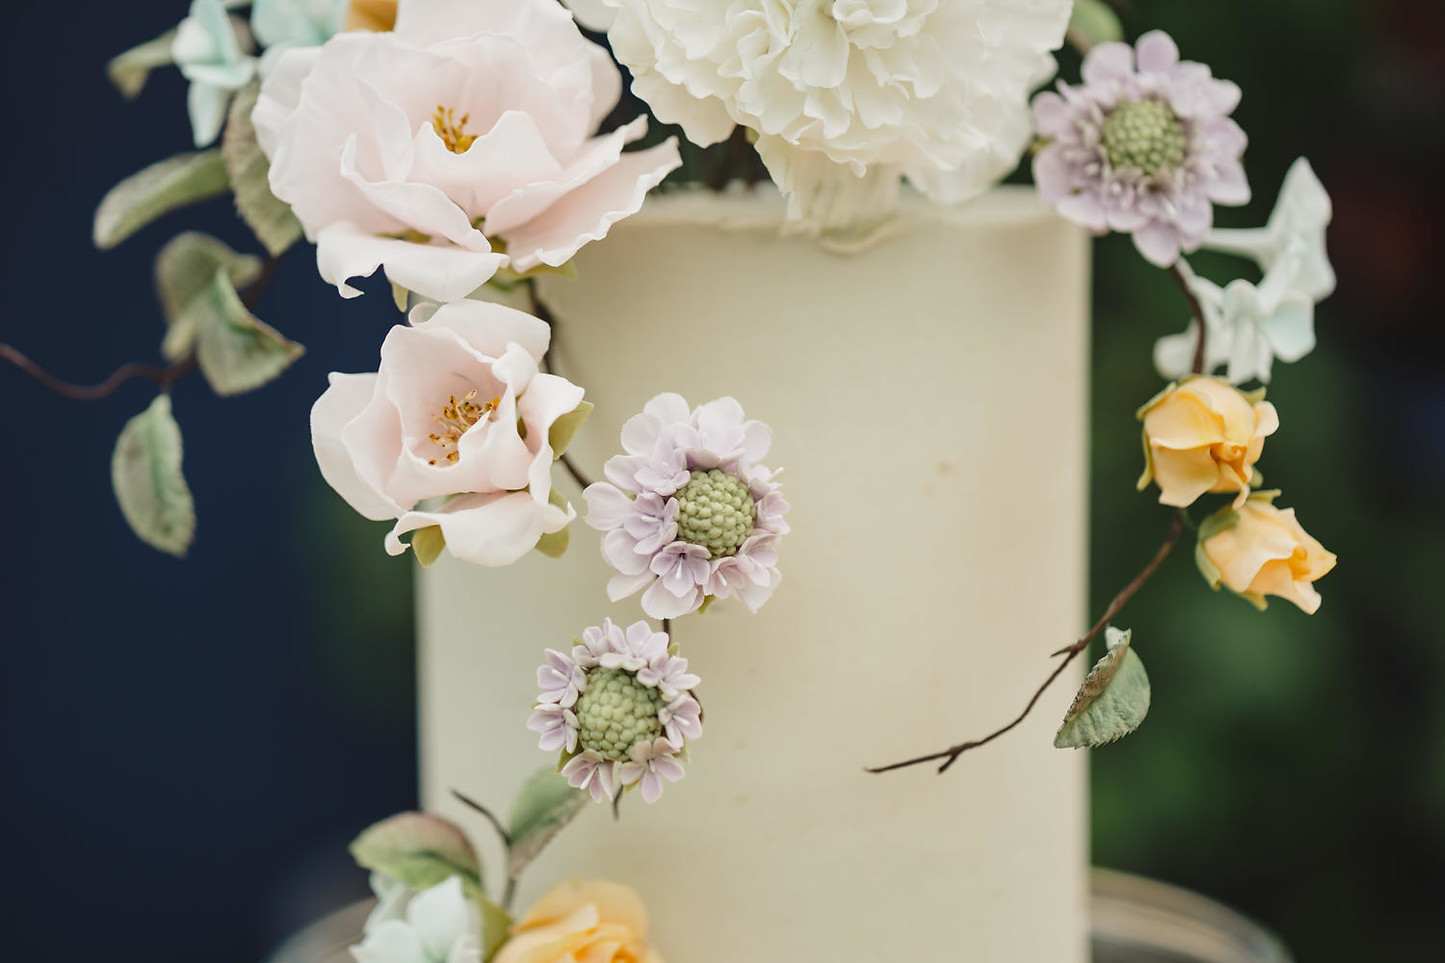 Cake by Dawn from Wedding Cakes by Design